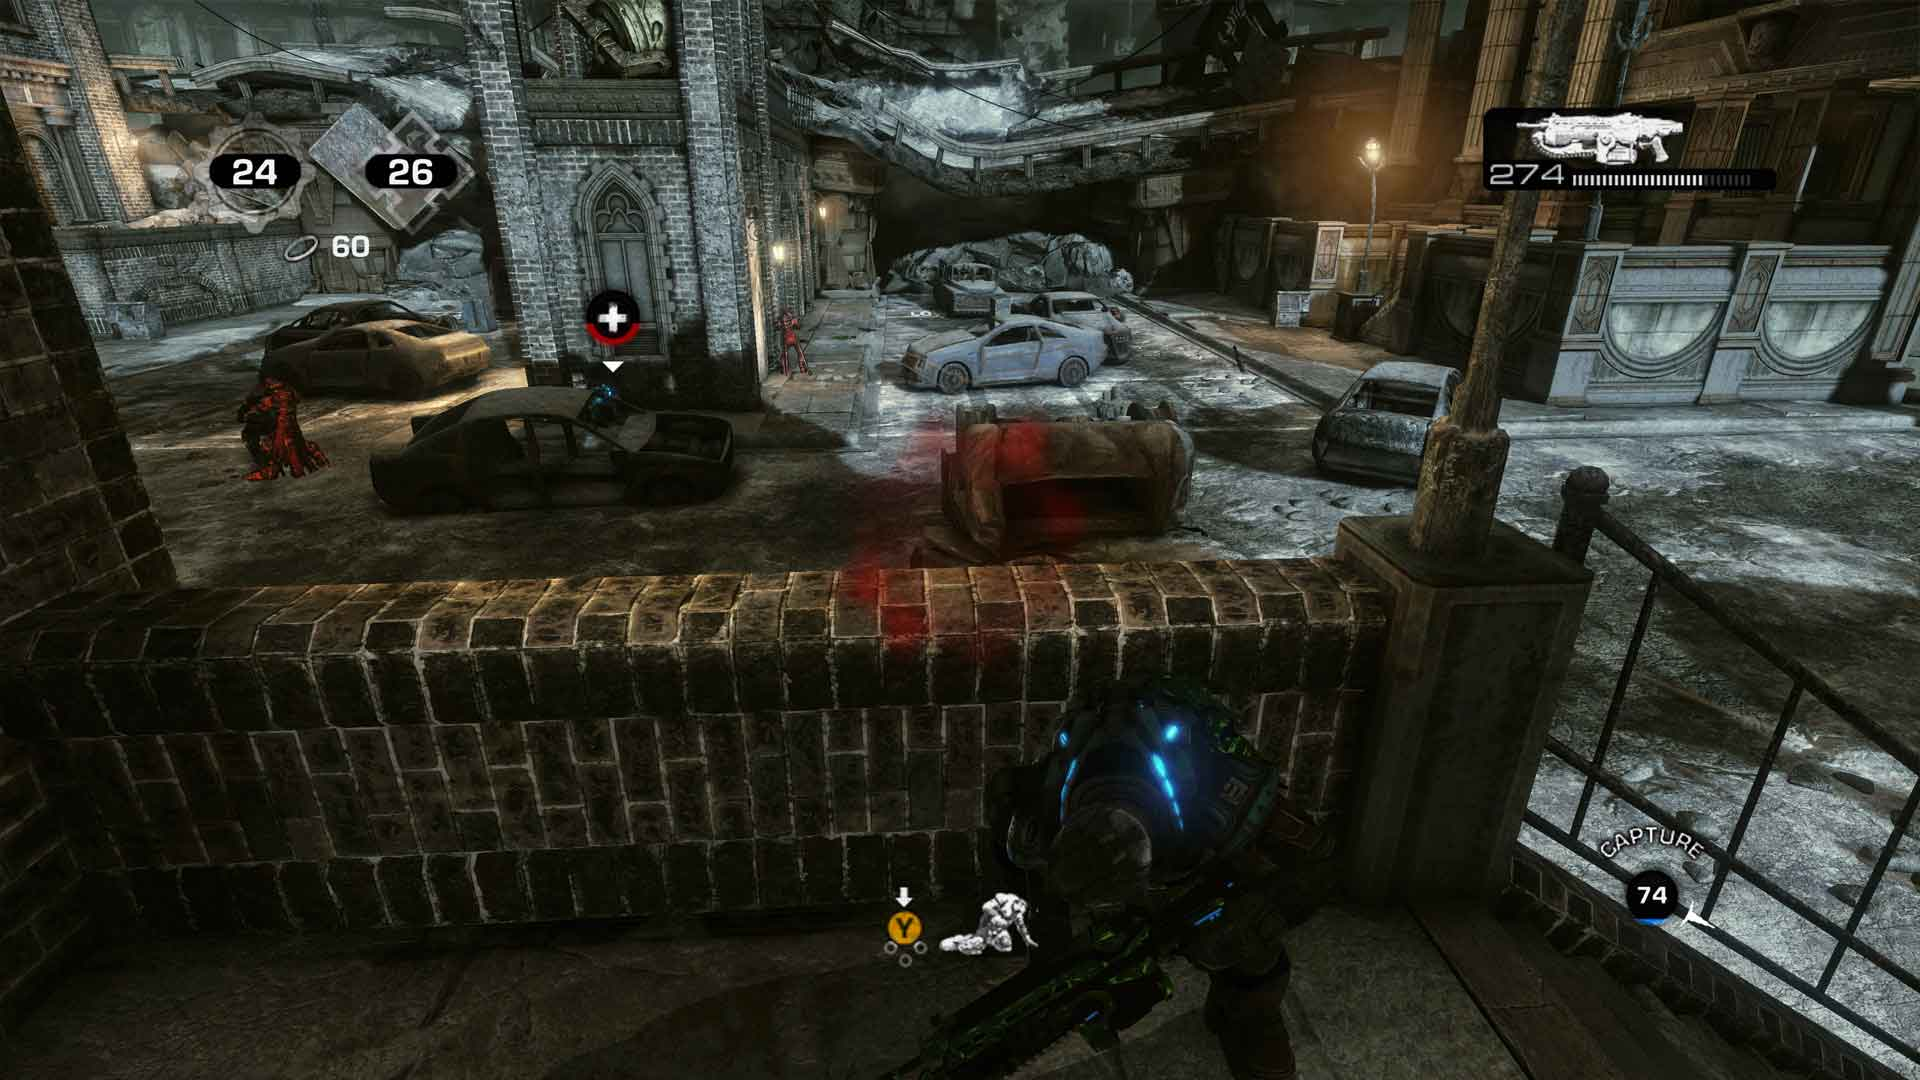 Gears of War 3 Xbox One X Screenshot